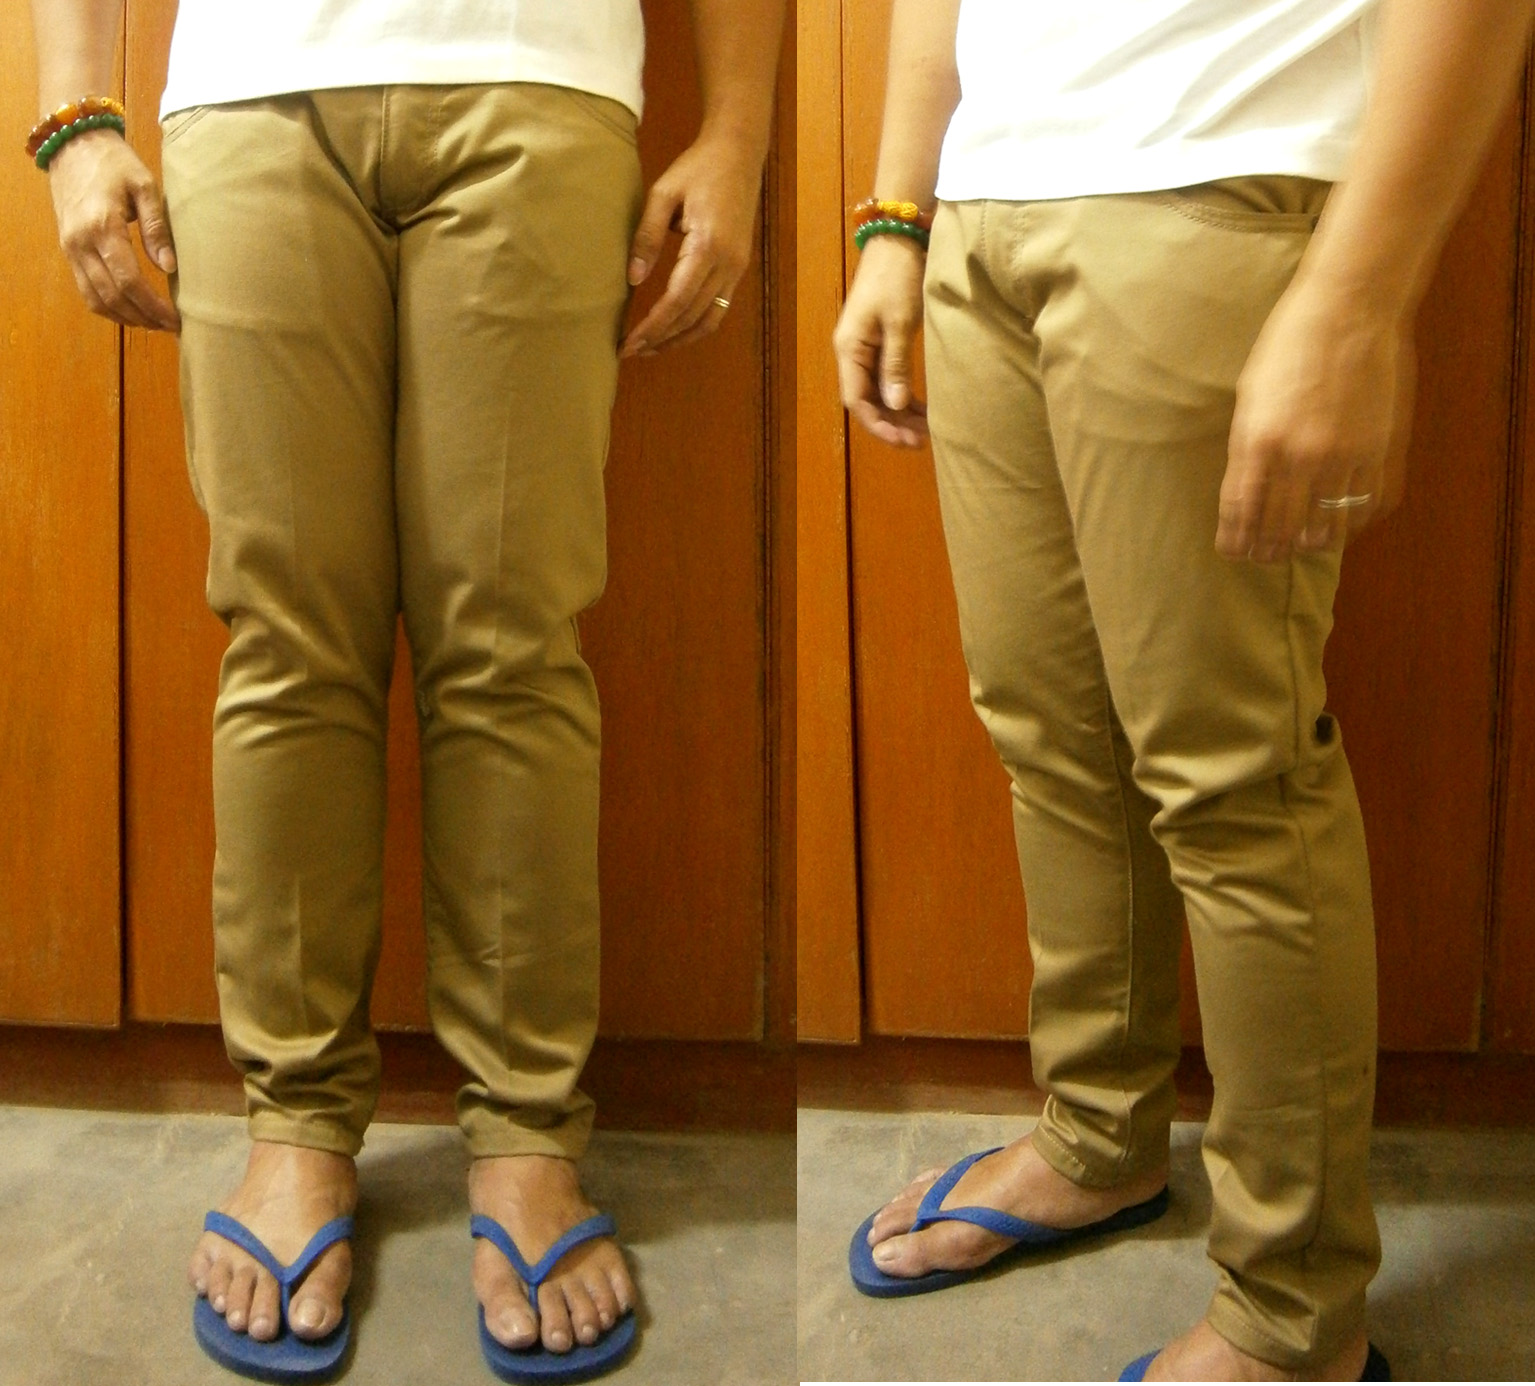 Trying on my skinny khaki pants for the first time